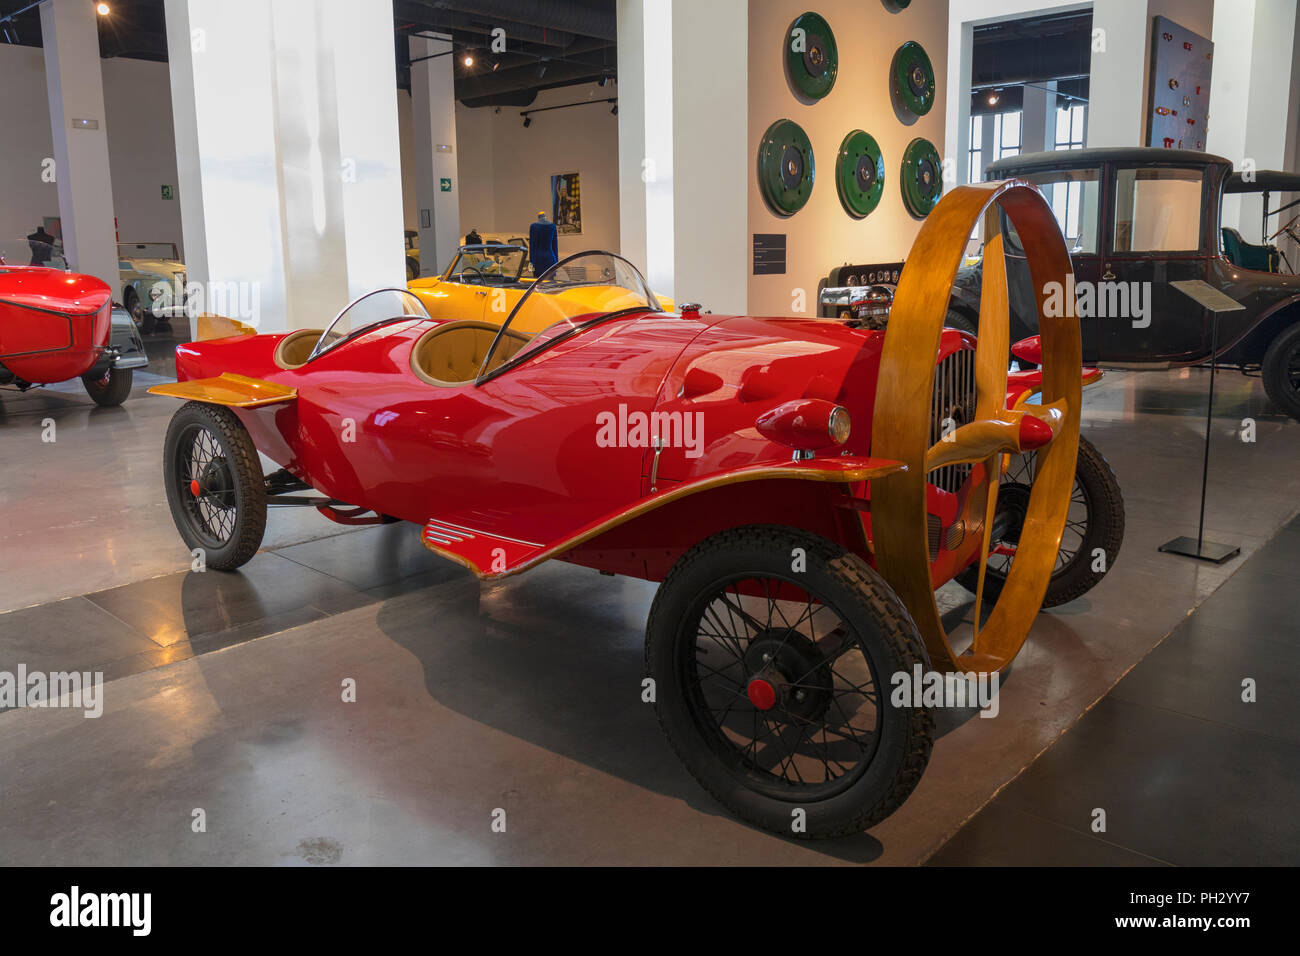 Museo Automovilistico y de la Moda, Malaga, Malaga Province, Spain.  Automobile and Fashion Museum.  Prototype of the propeller driven Helicron 2, bui - Stock Image